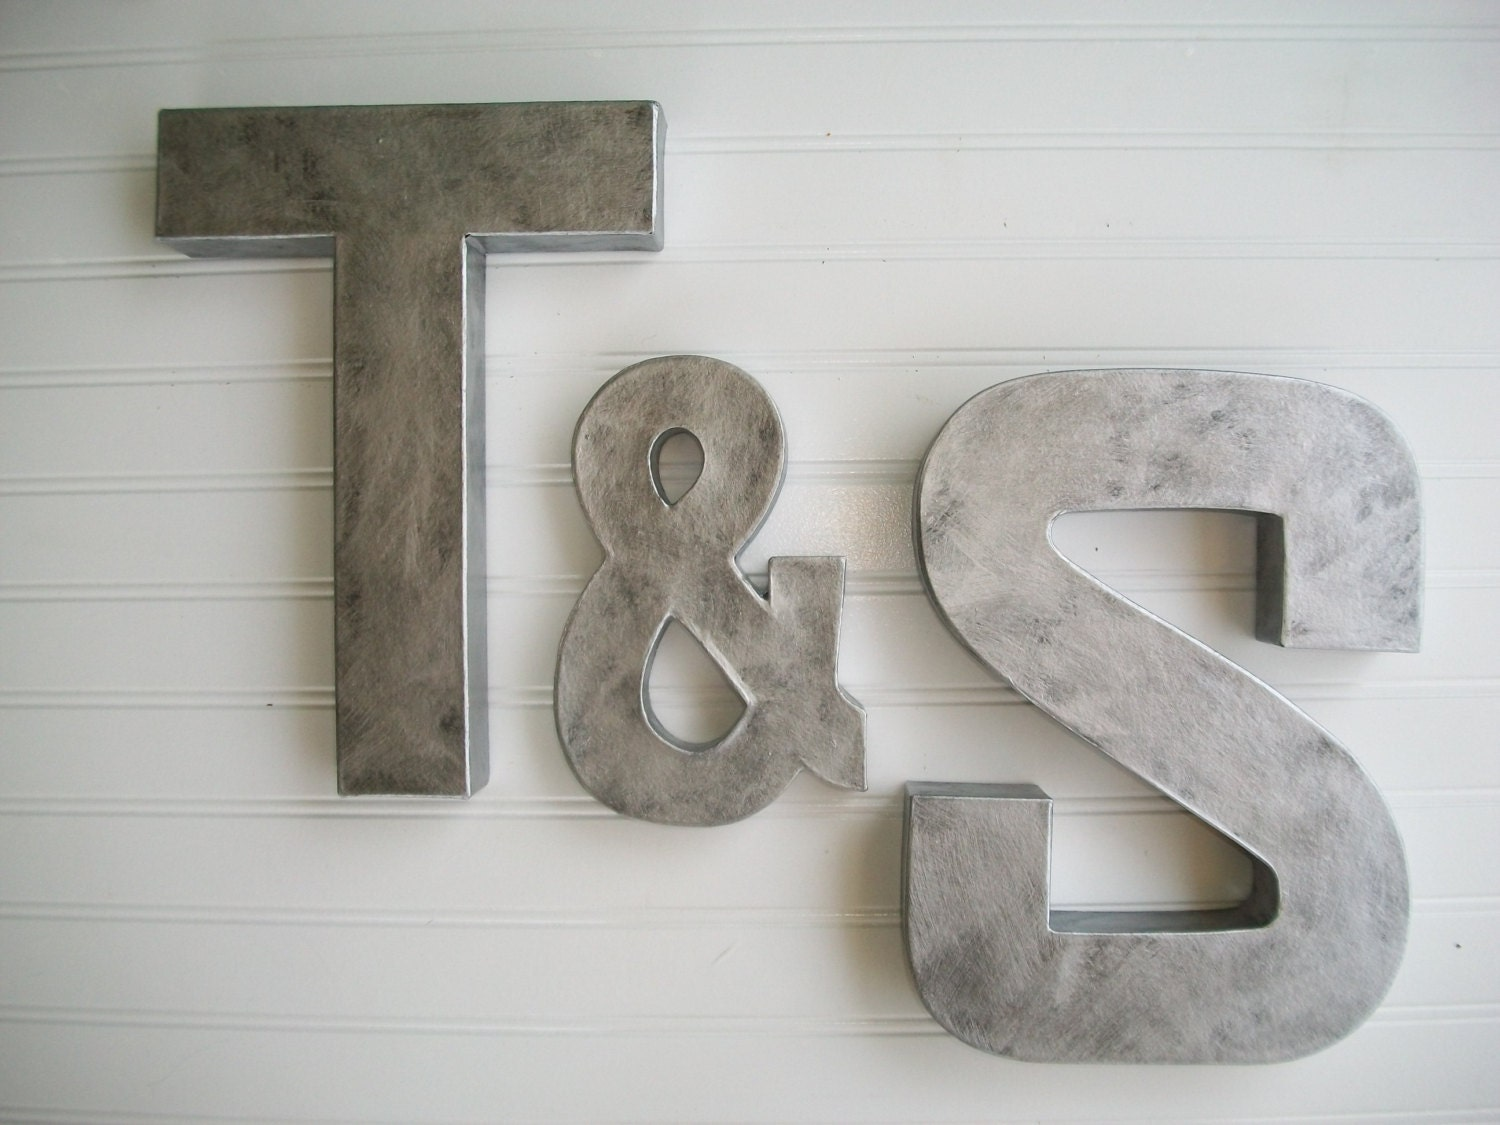 Painted Letter Wall Letters Zinc Metal By Home Decorators Catalog Best Ideas of Home Decor and Design [homedecoratorscatalog.us]